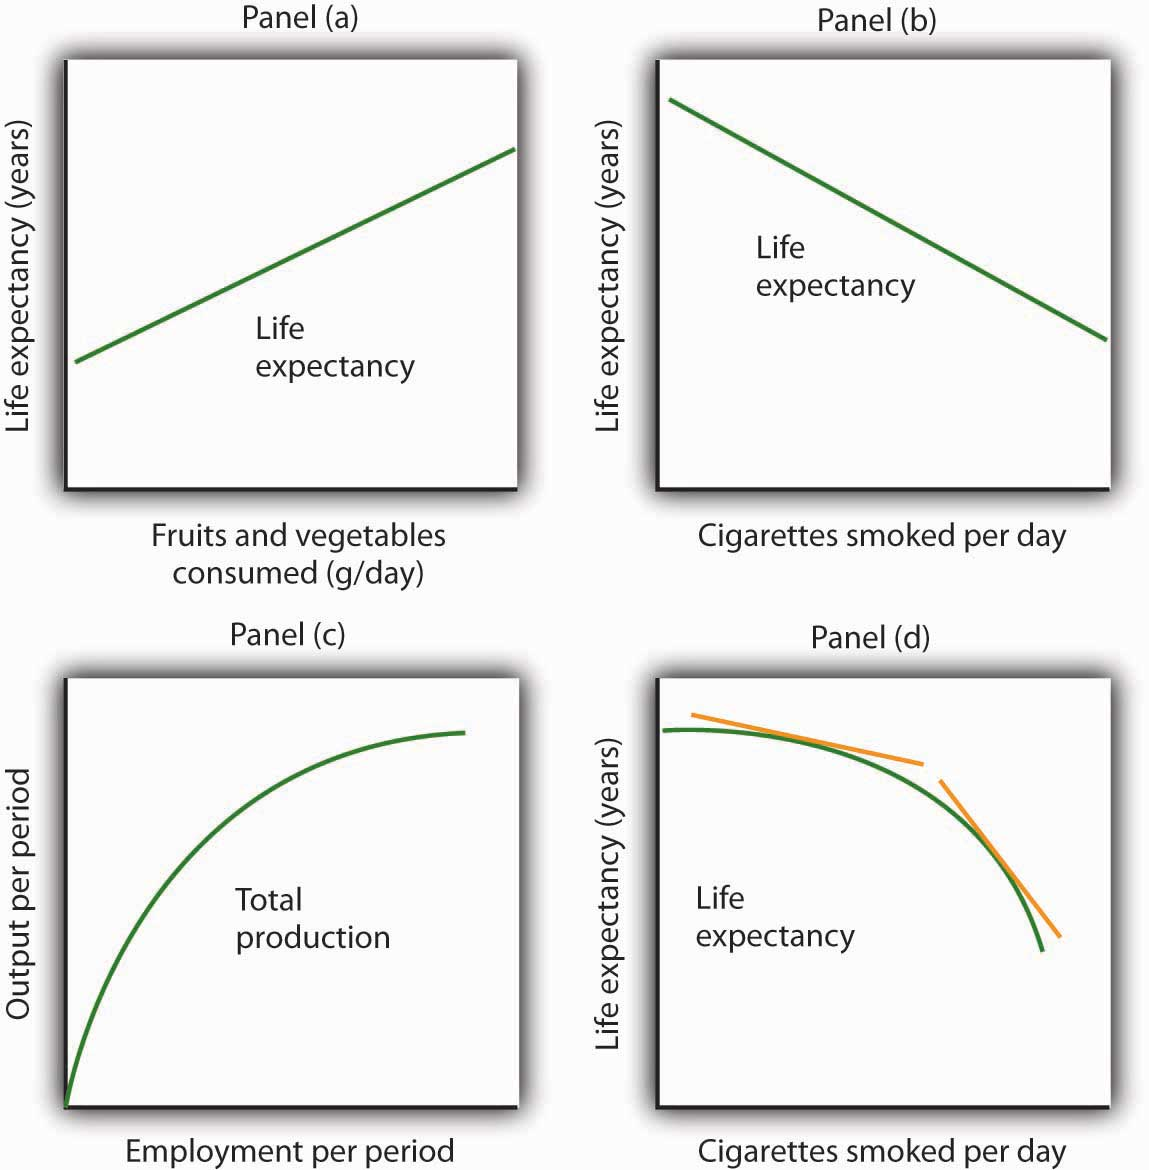 Appendix a graphs in economics we often use graphs without numbers to suggest the nature of relationships between variables the graphs in the four panels correspond to the relationships robcynllc Choice Image